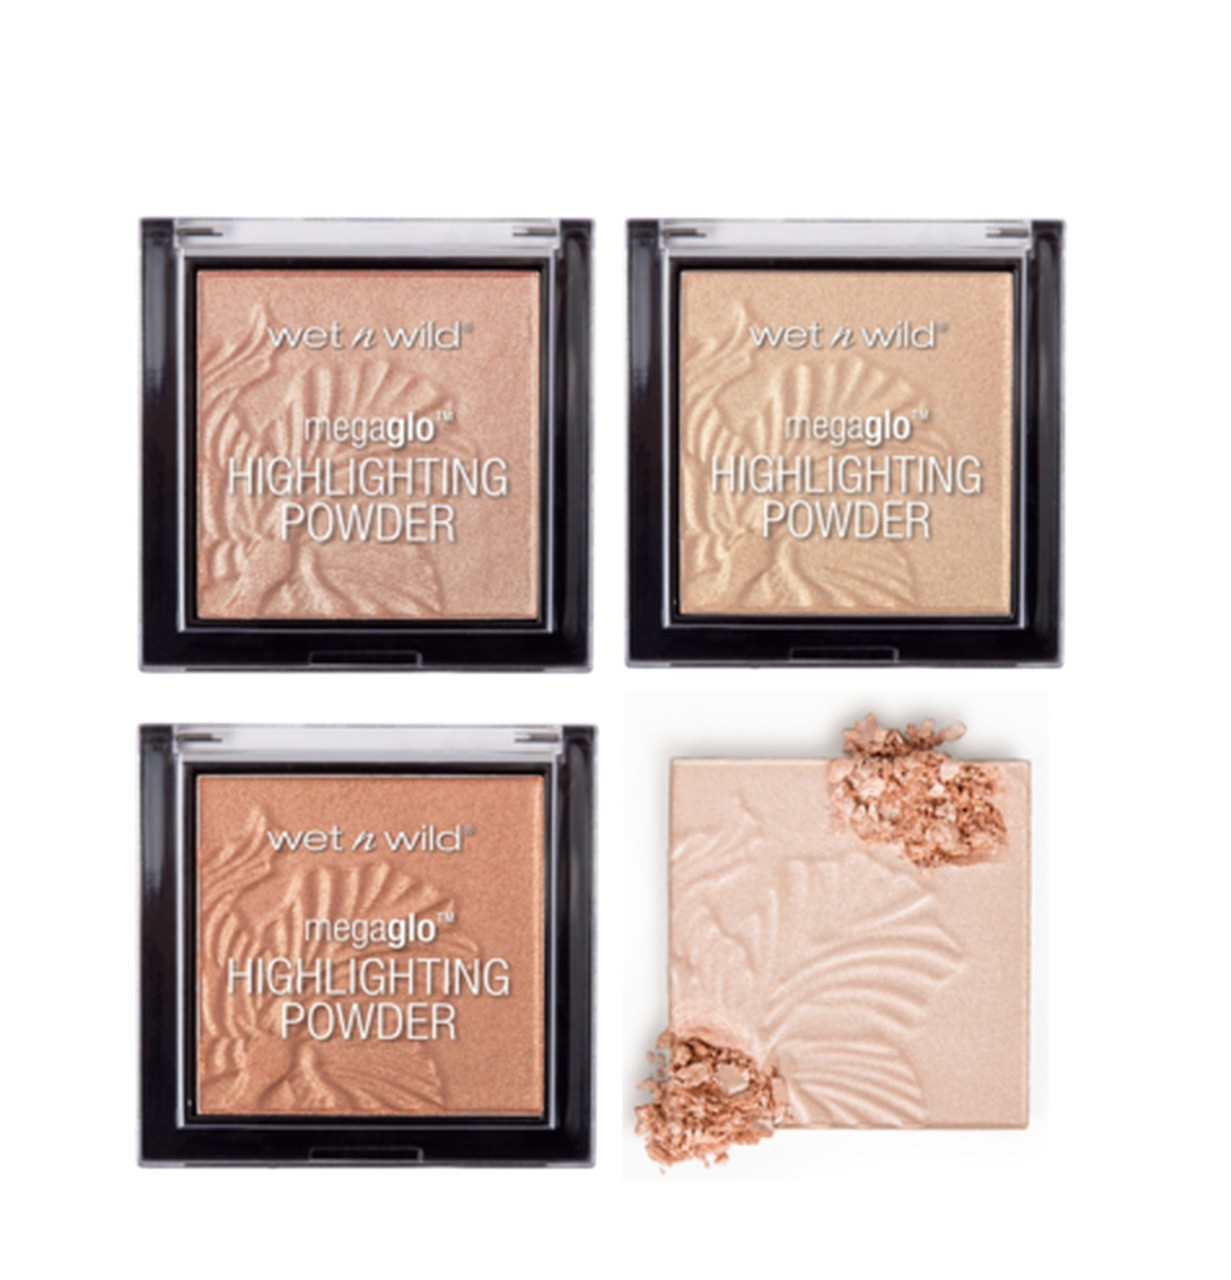 Iluminador MegaGlo Highlighting Powder WET N WILD